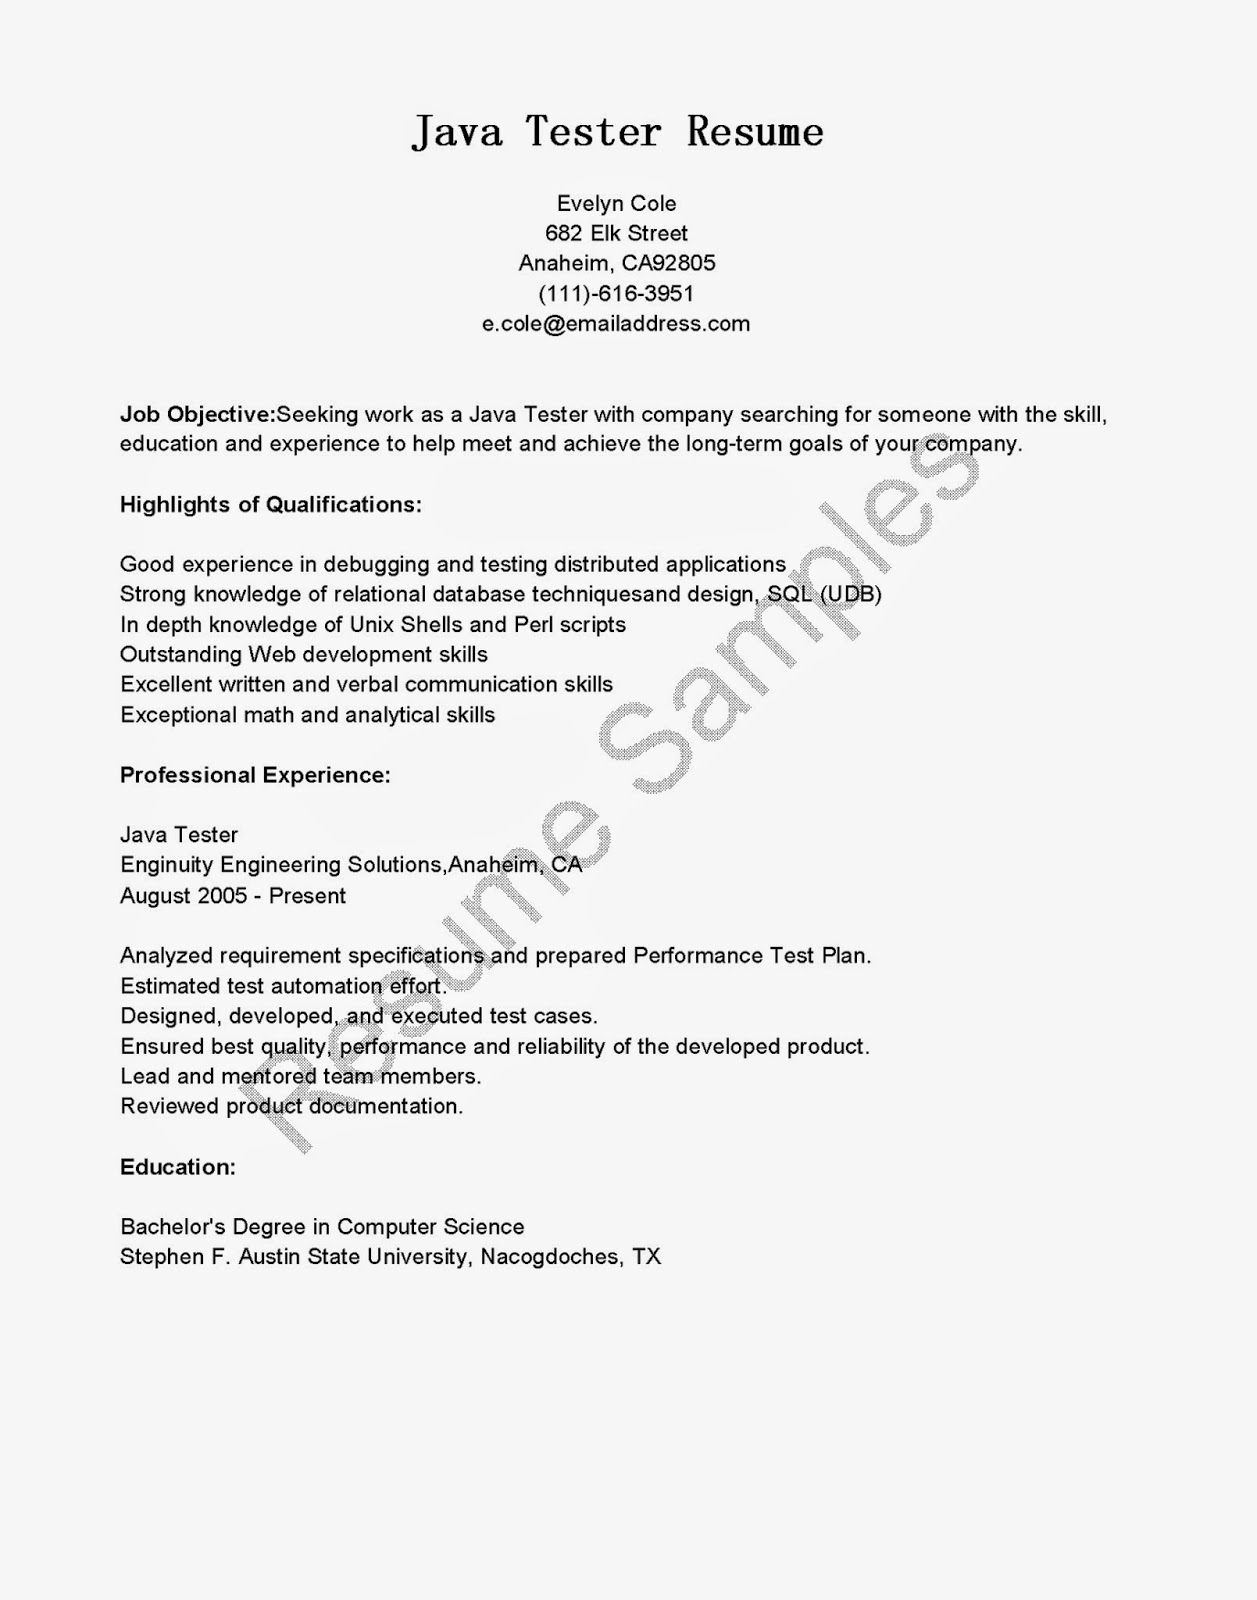 resume samples java tester resume sample